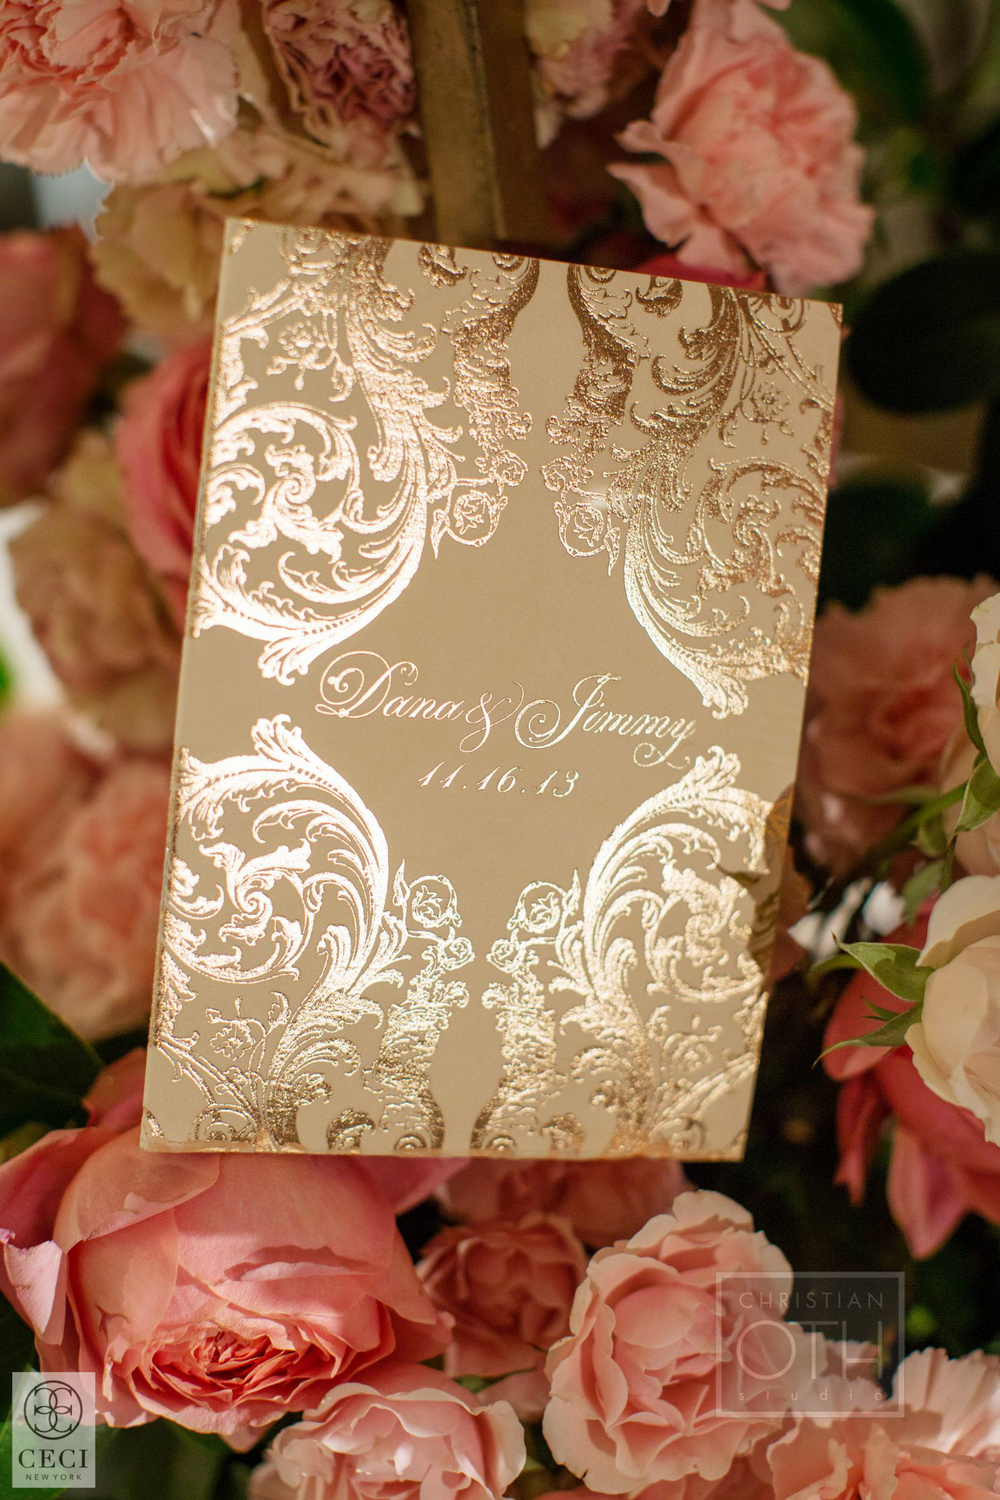 Ceci_New_York_Christian_Oth_CeciStyle_Pierre_New_York_City_Wedding_Luxury_Custom_Invitations_Personalized_Rose_Gold_Blush_Bride_-6.jpg